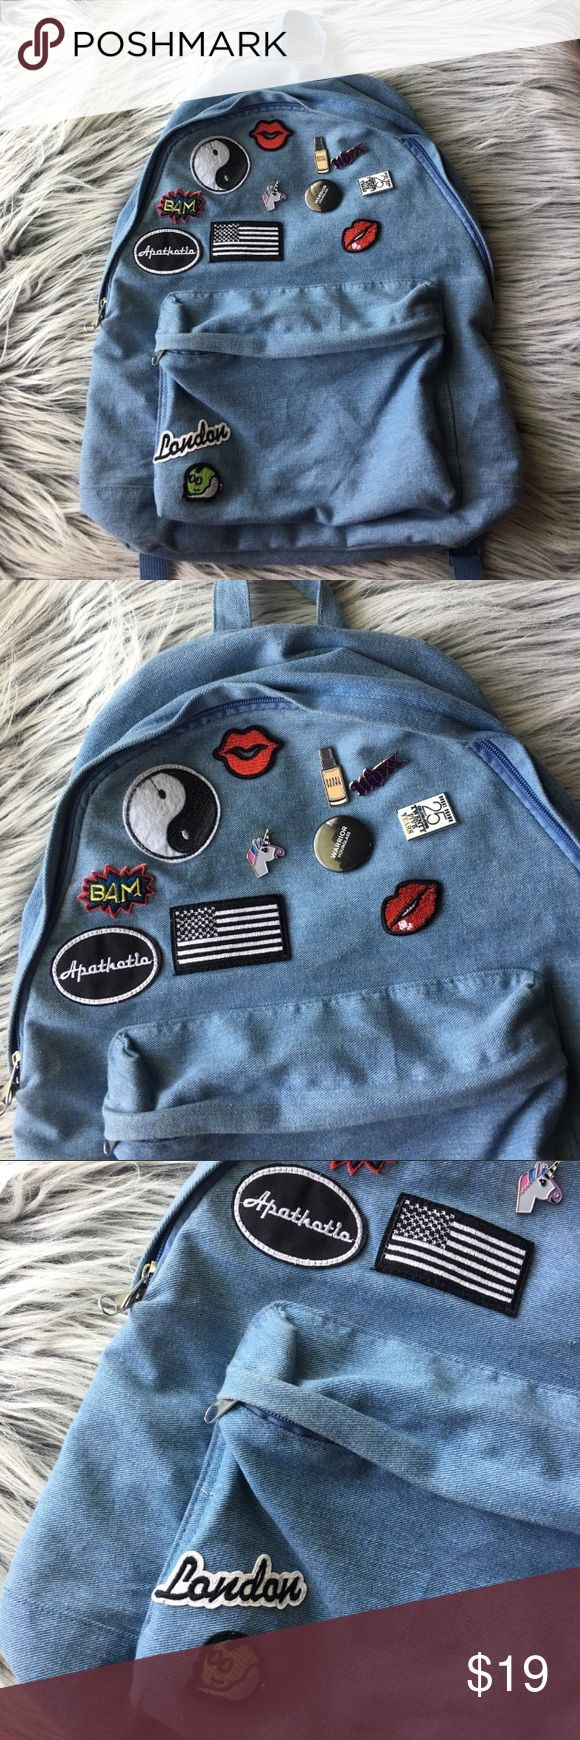 """🤖Unisex🤖Jean backpack🤖With patches🤖 🤖EUC🤖Includes all patches🤖Mostly all signify happiness and travel🤖Will ship asap🤖No exchange or returns🤖All sales are final🤖UNISEX🤖All offers are welcomed🤖Top•Bottom is 19""""🤖Side•Side 14""""🤖 Topman Bags Backpacks"""